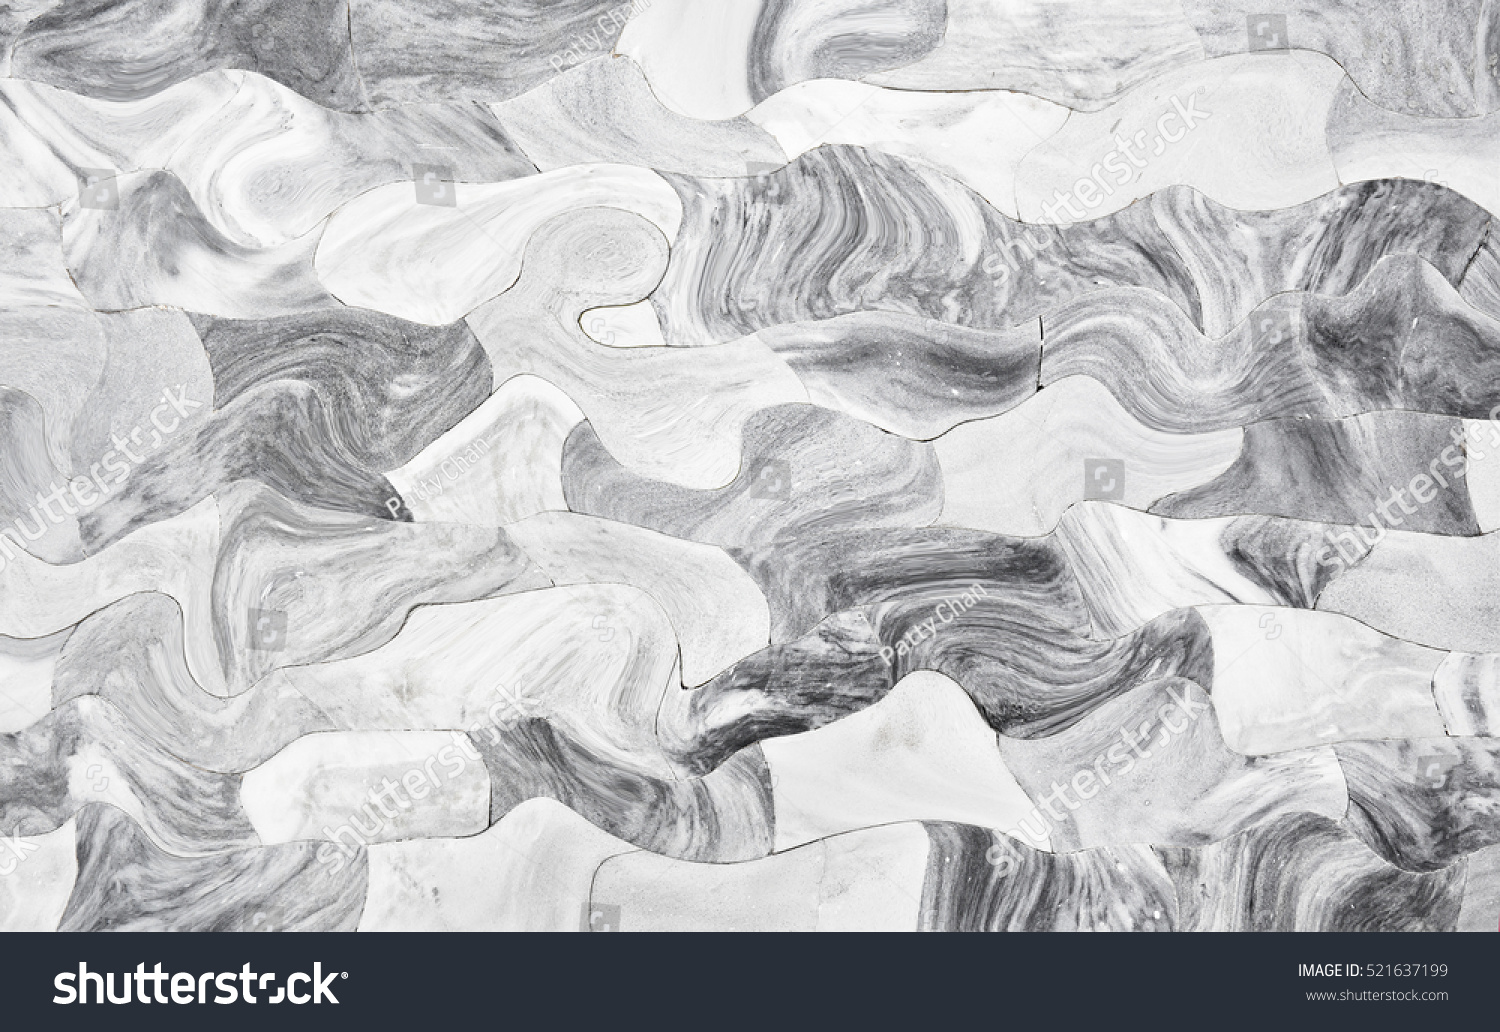 Cool Wallpaper Marble Case - stock-photo-white-gray-marble-ink-texture-background-pattern-can-used-for-wallpaper-or-skin-wall-tile-521637199  Pic_866290.jpg